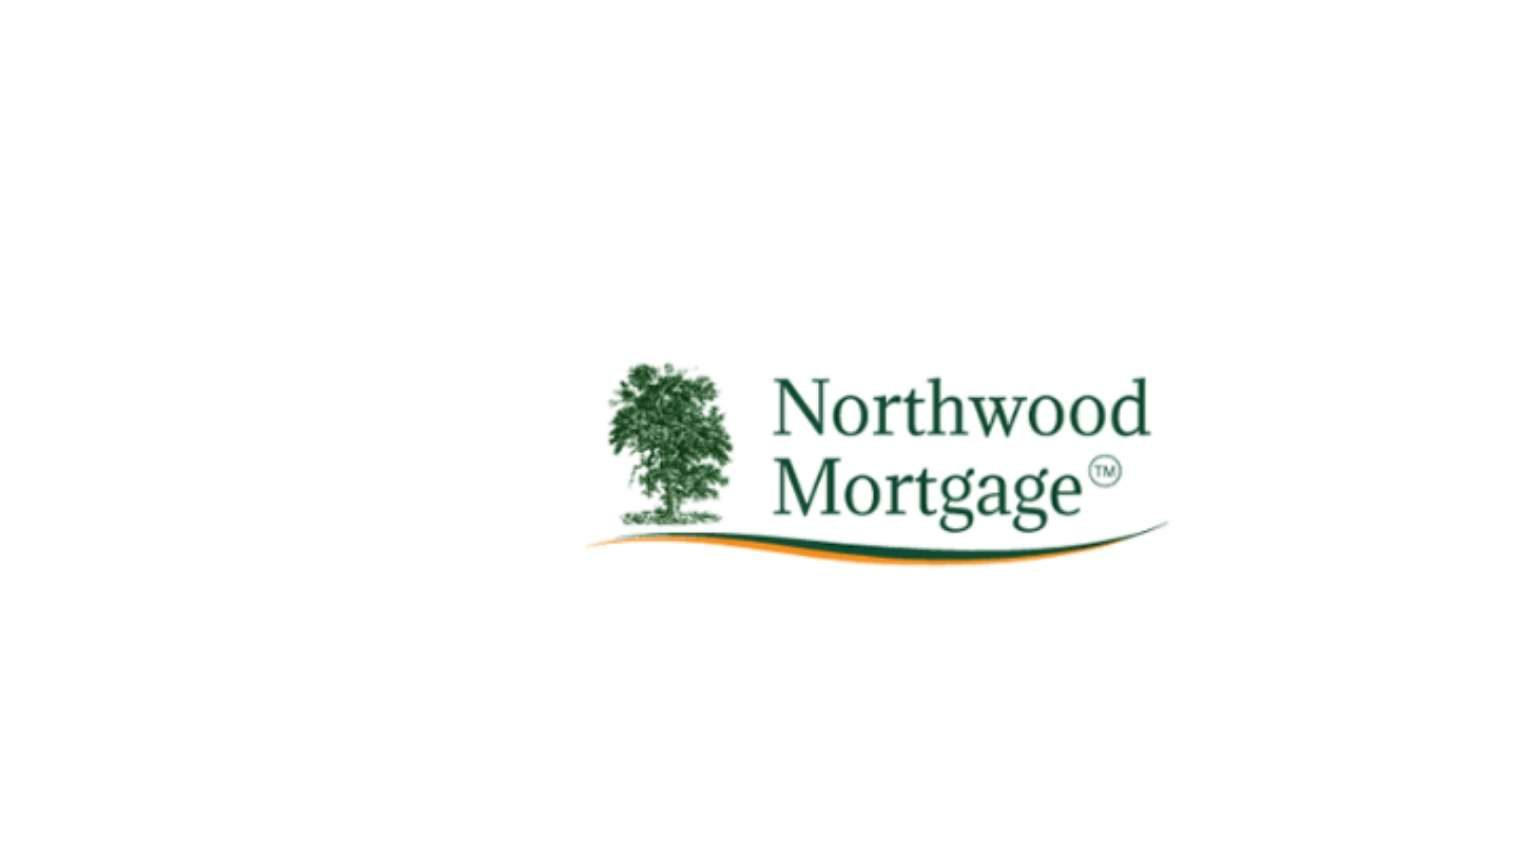 Northwood Mortgage